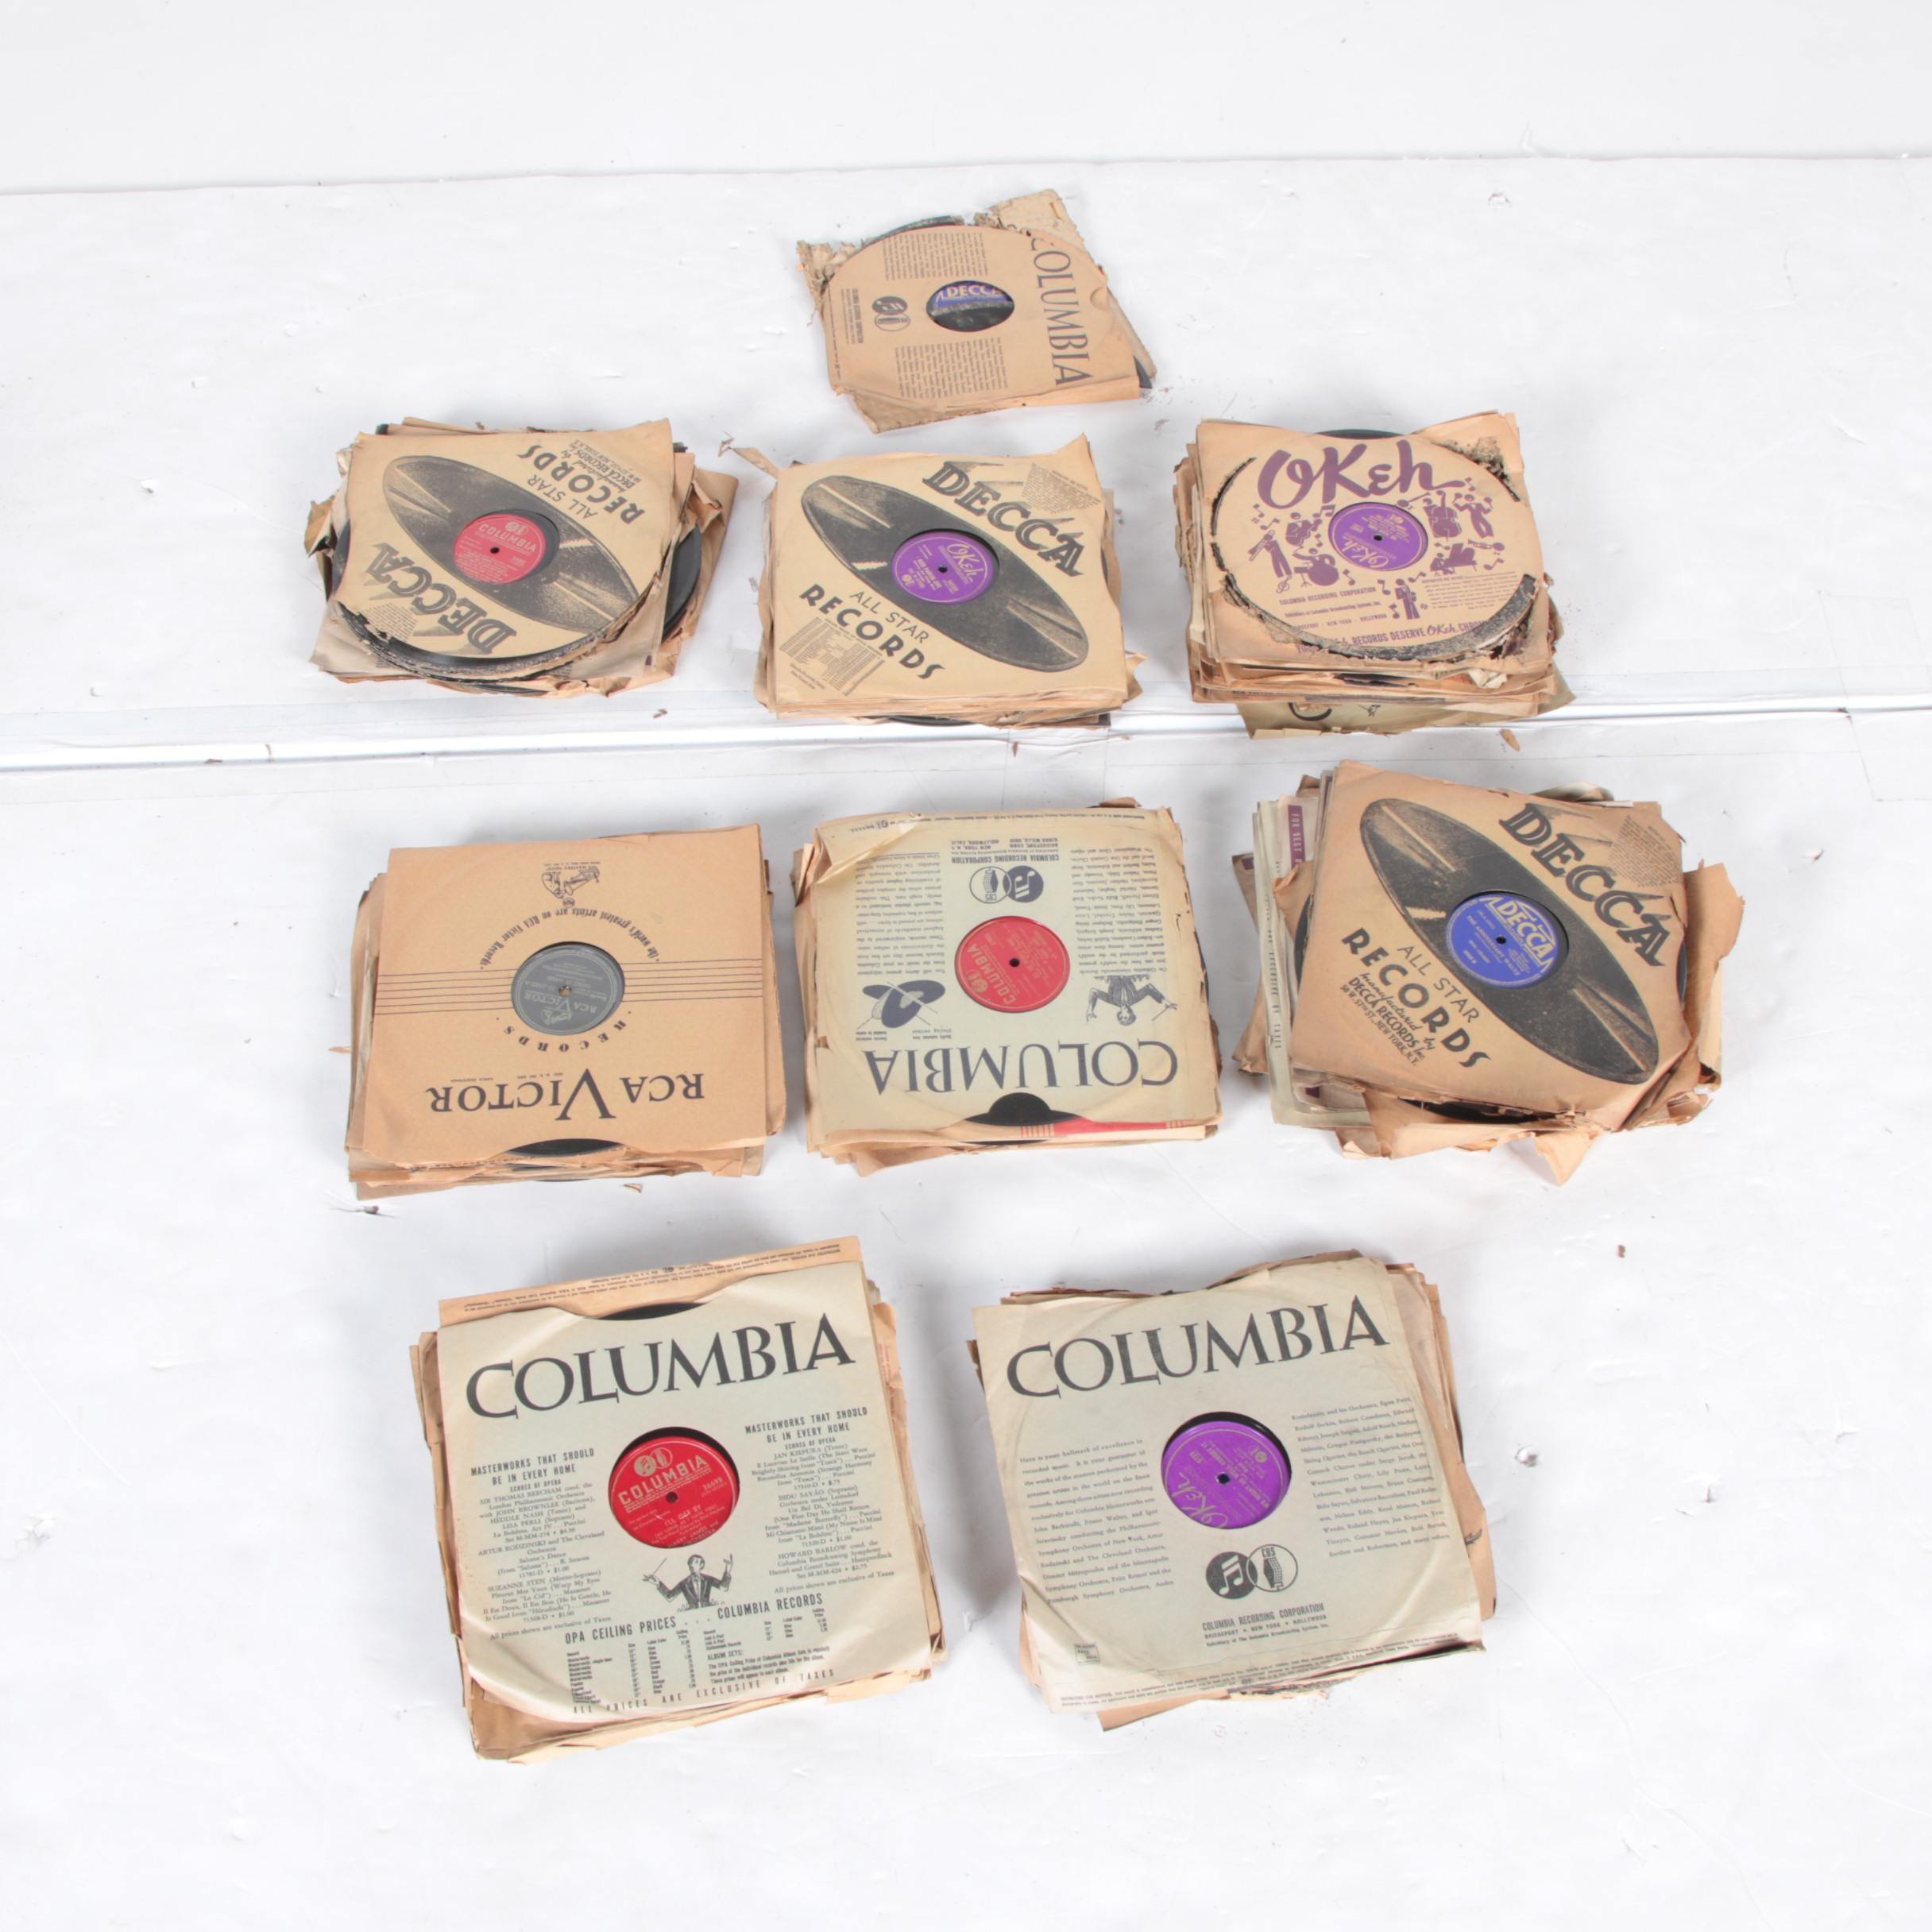 Bing Crosby, Glenn Miller, Harry James, and Other 78 rpm Records